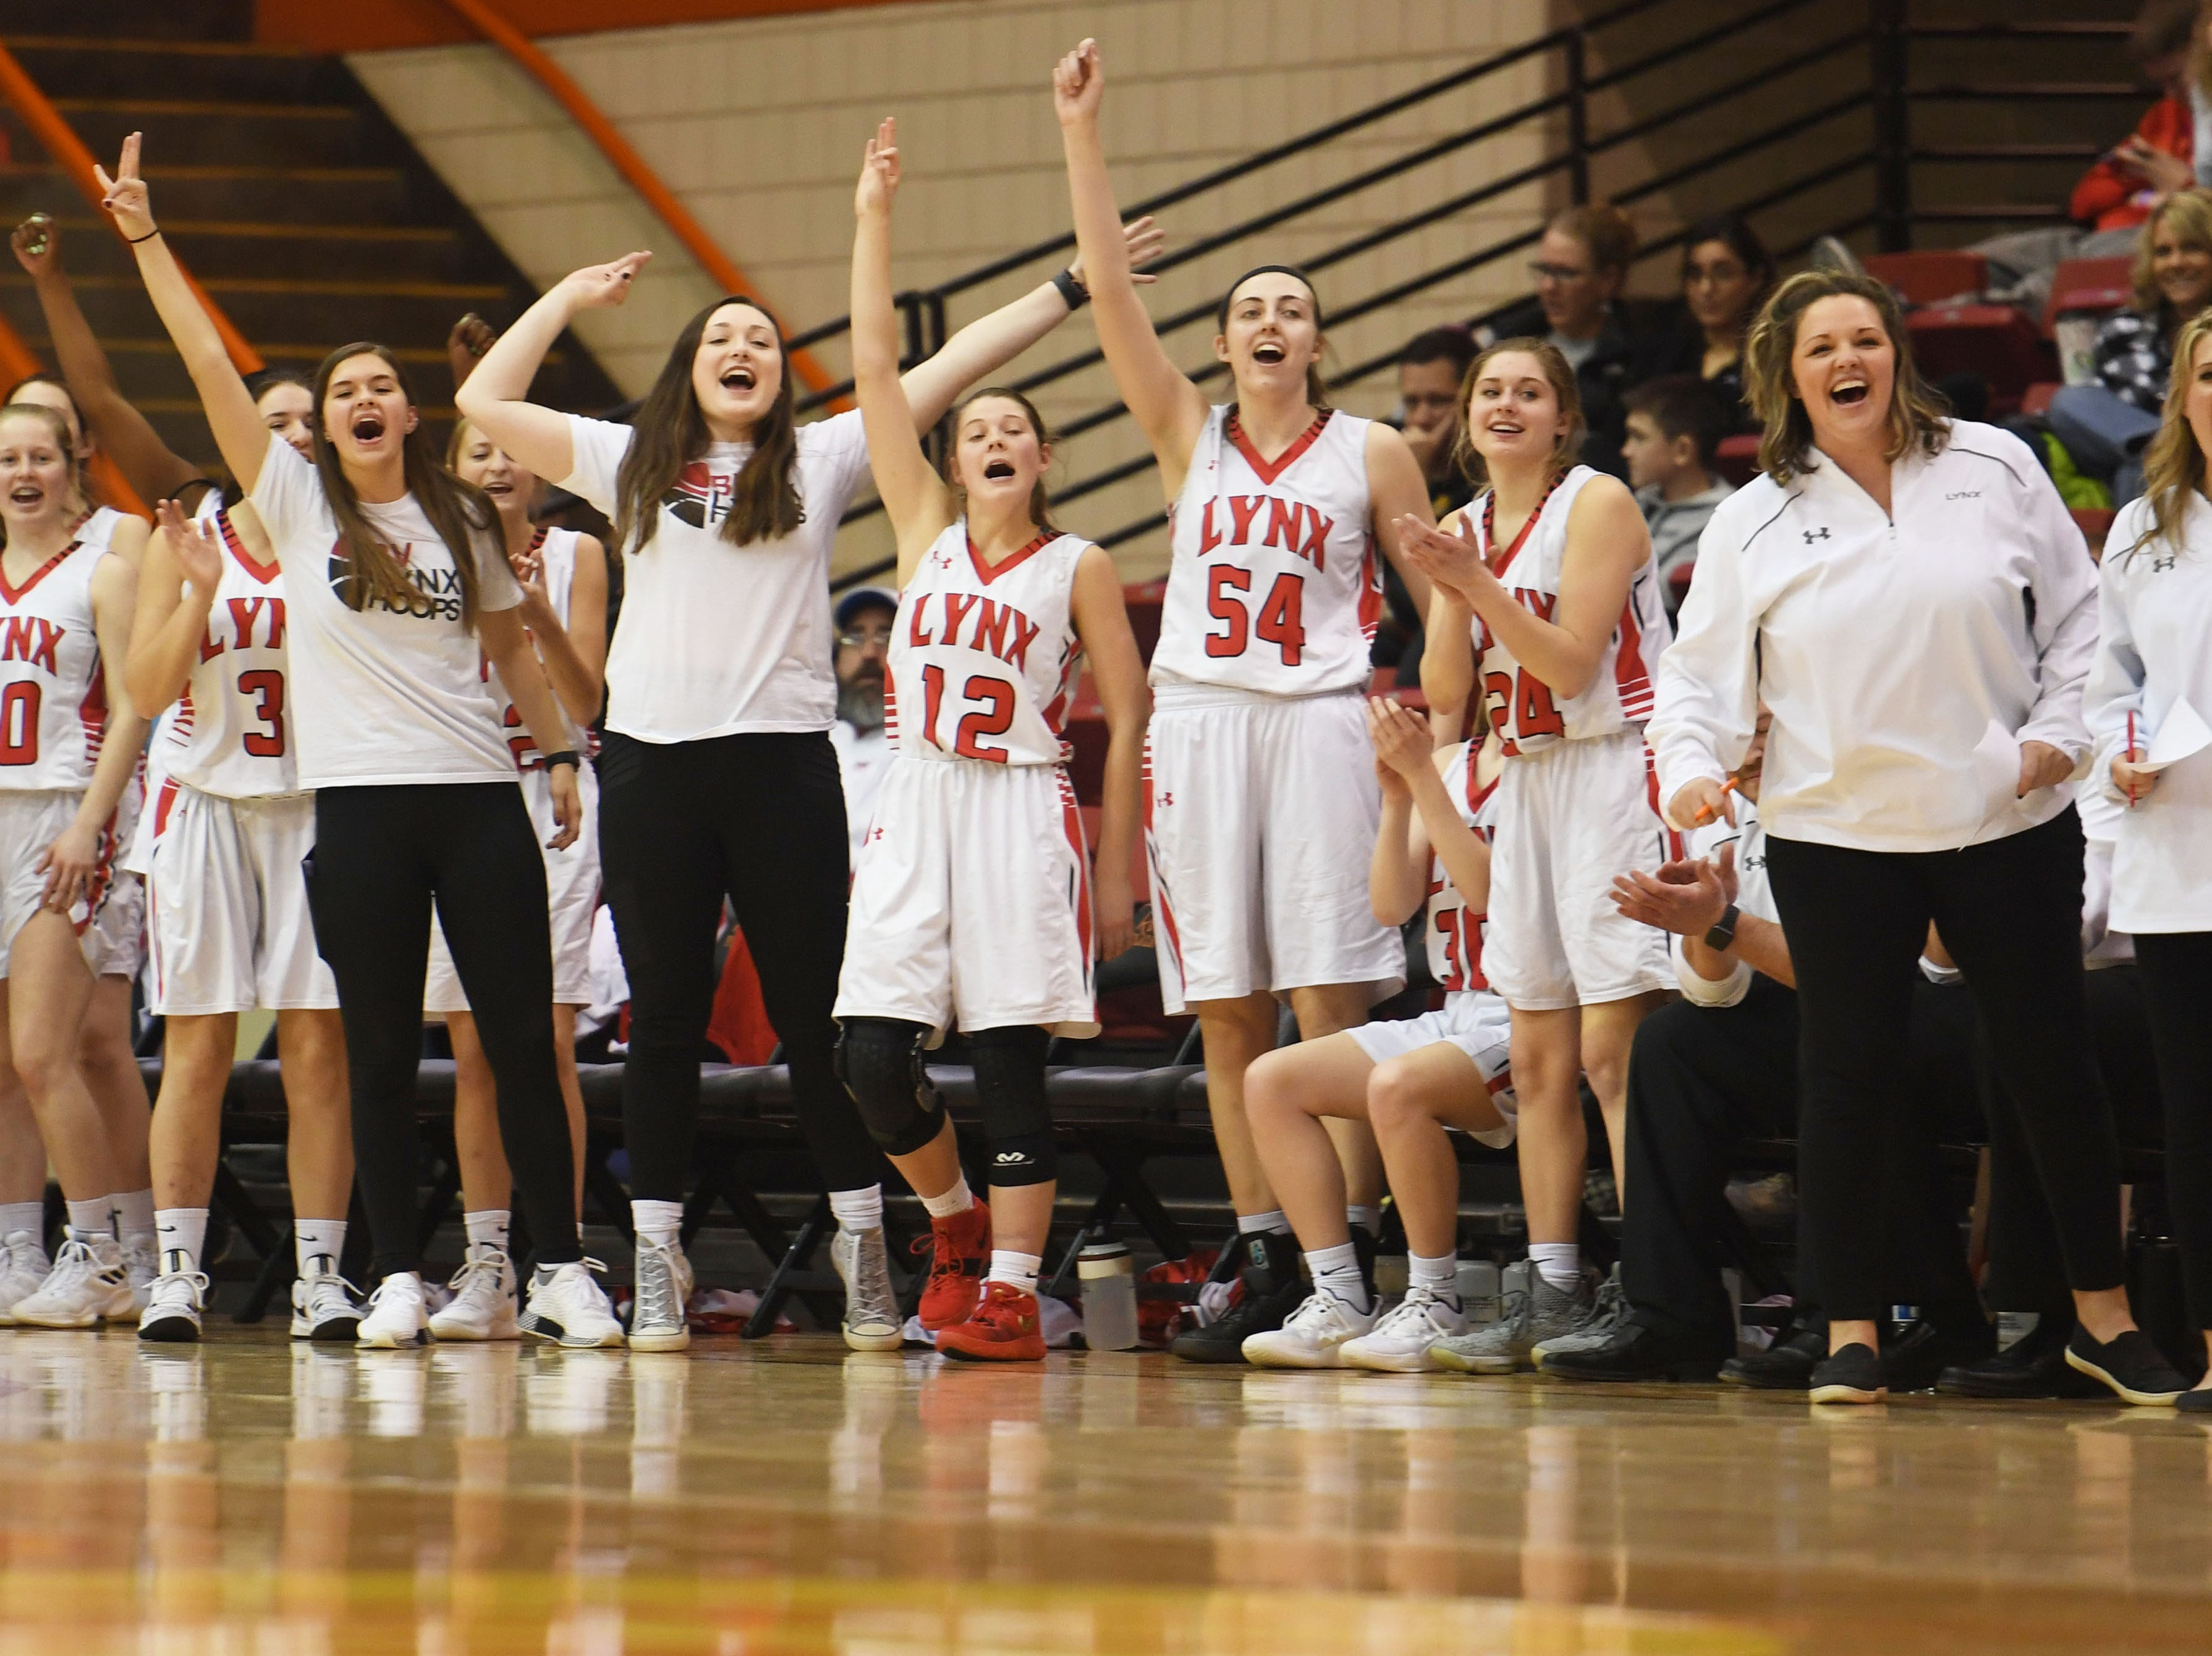 Brandon Valley's sideline cheers during the game against Brookings in the Class AA quarterfinals Thursday, March 14, in Rapid City.